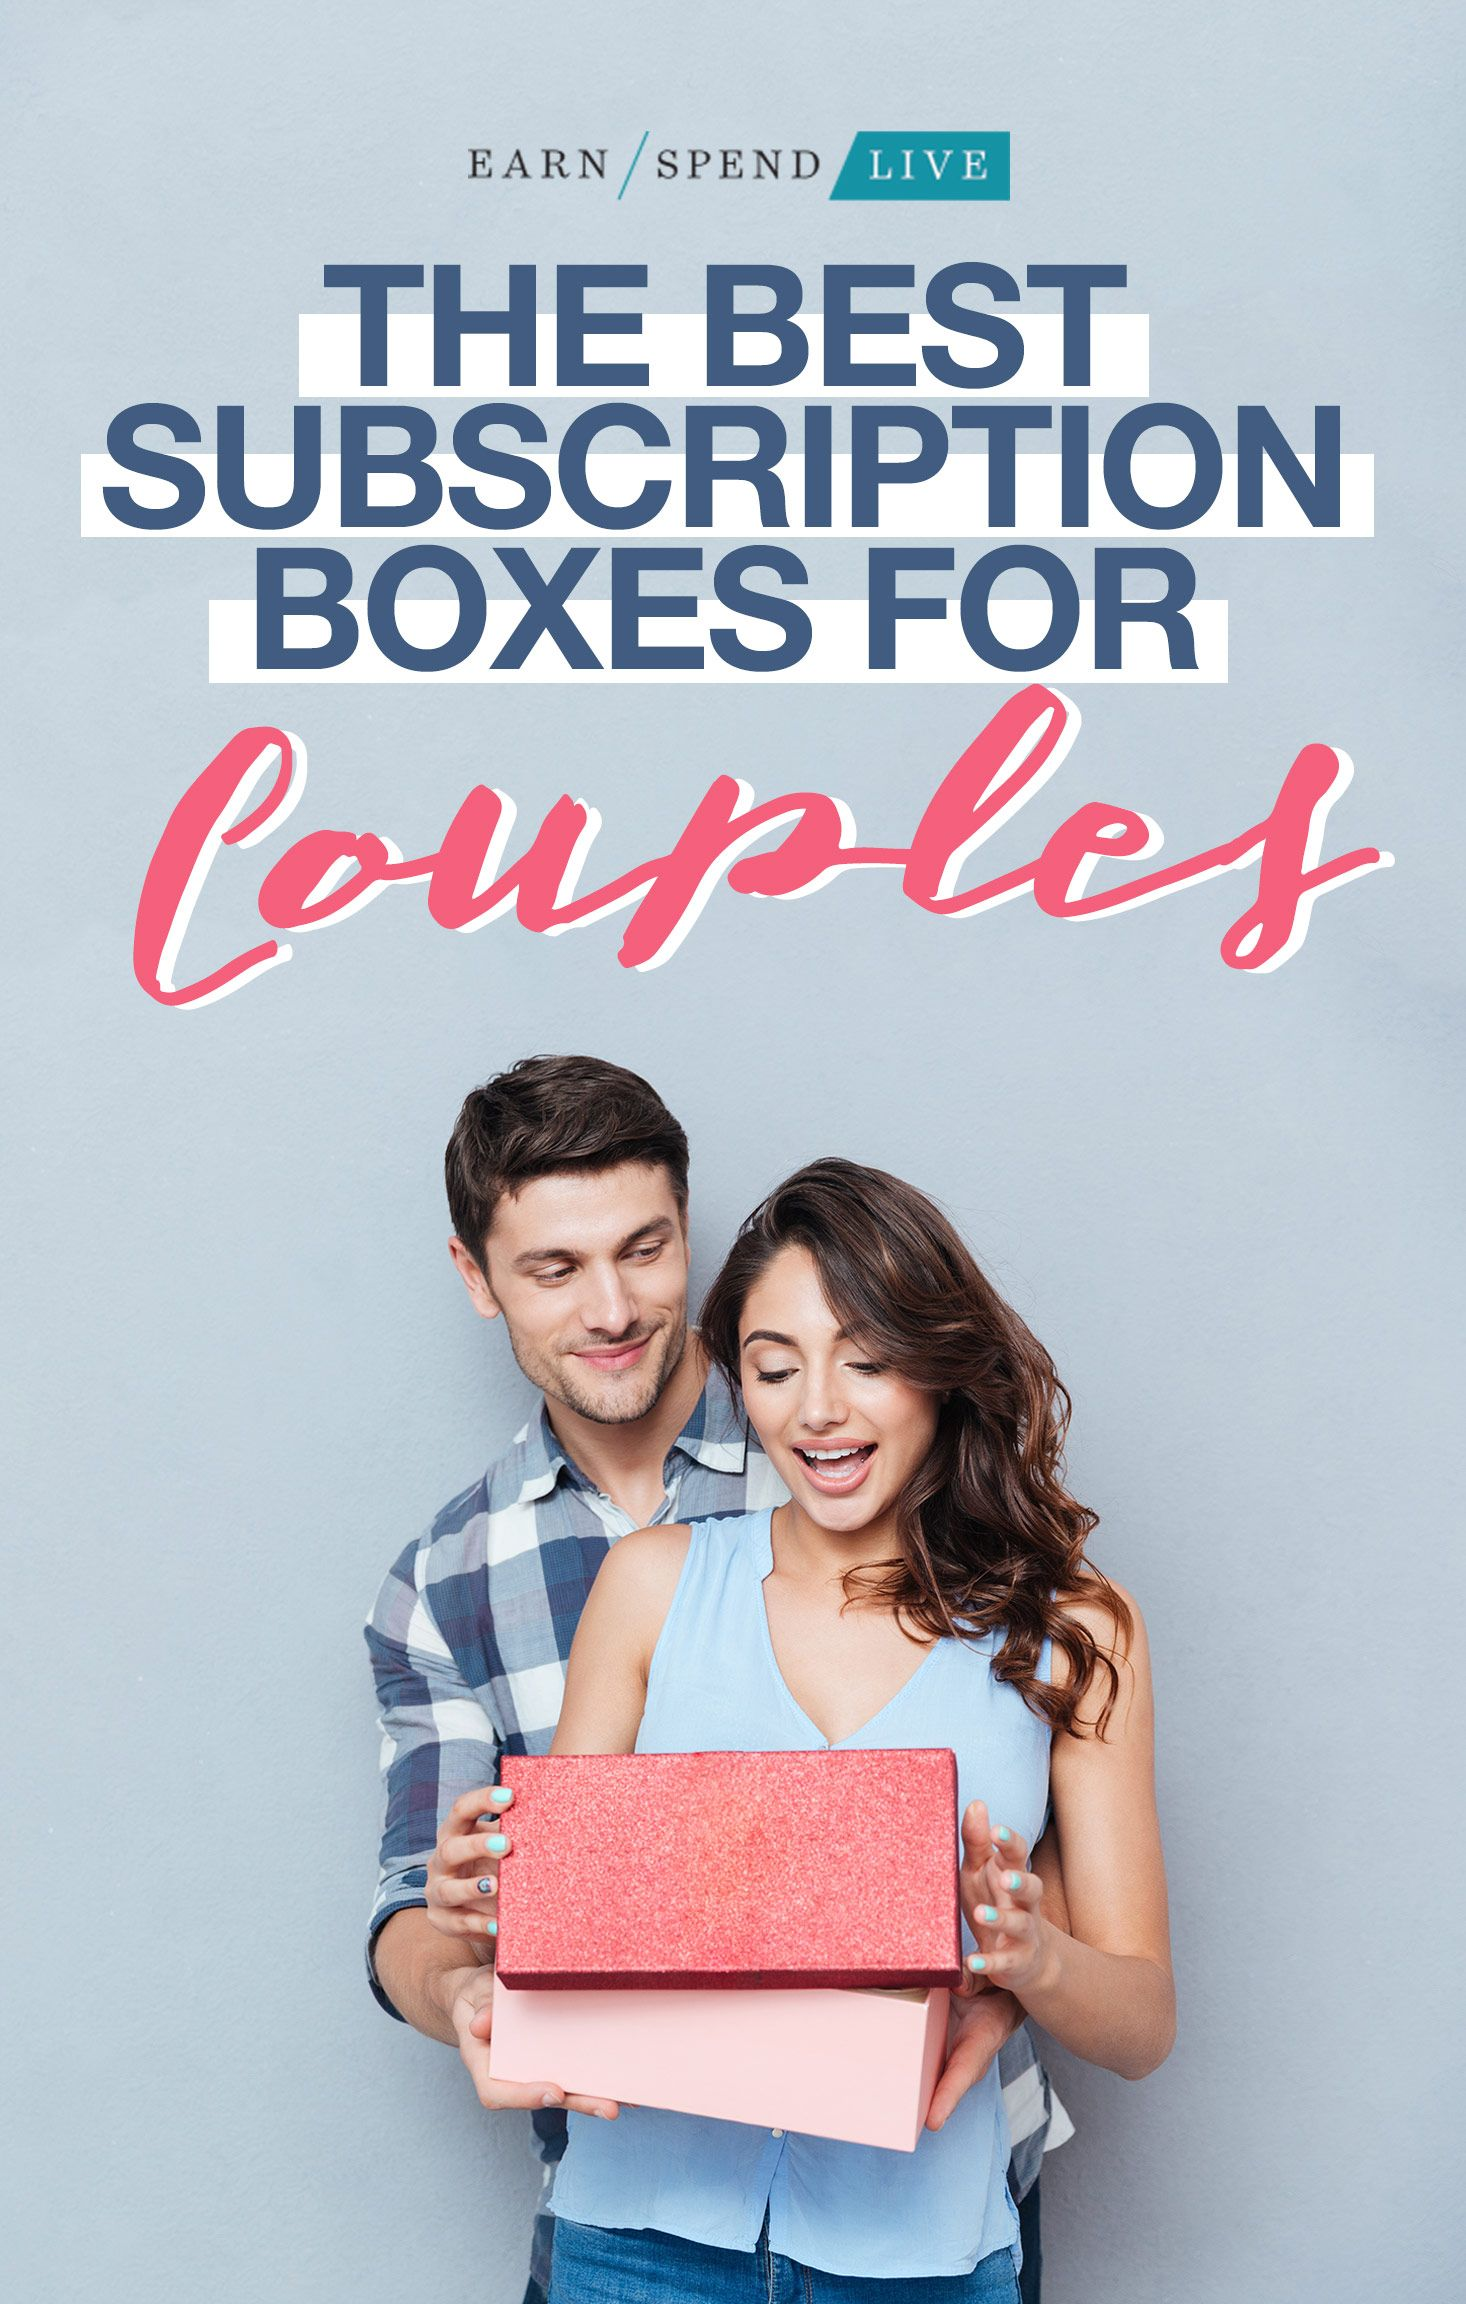 The Best Subscription Boxes For Couples Earn Spend Live Couple Activities Subscription Boxes Subscription Gifts